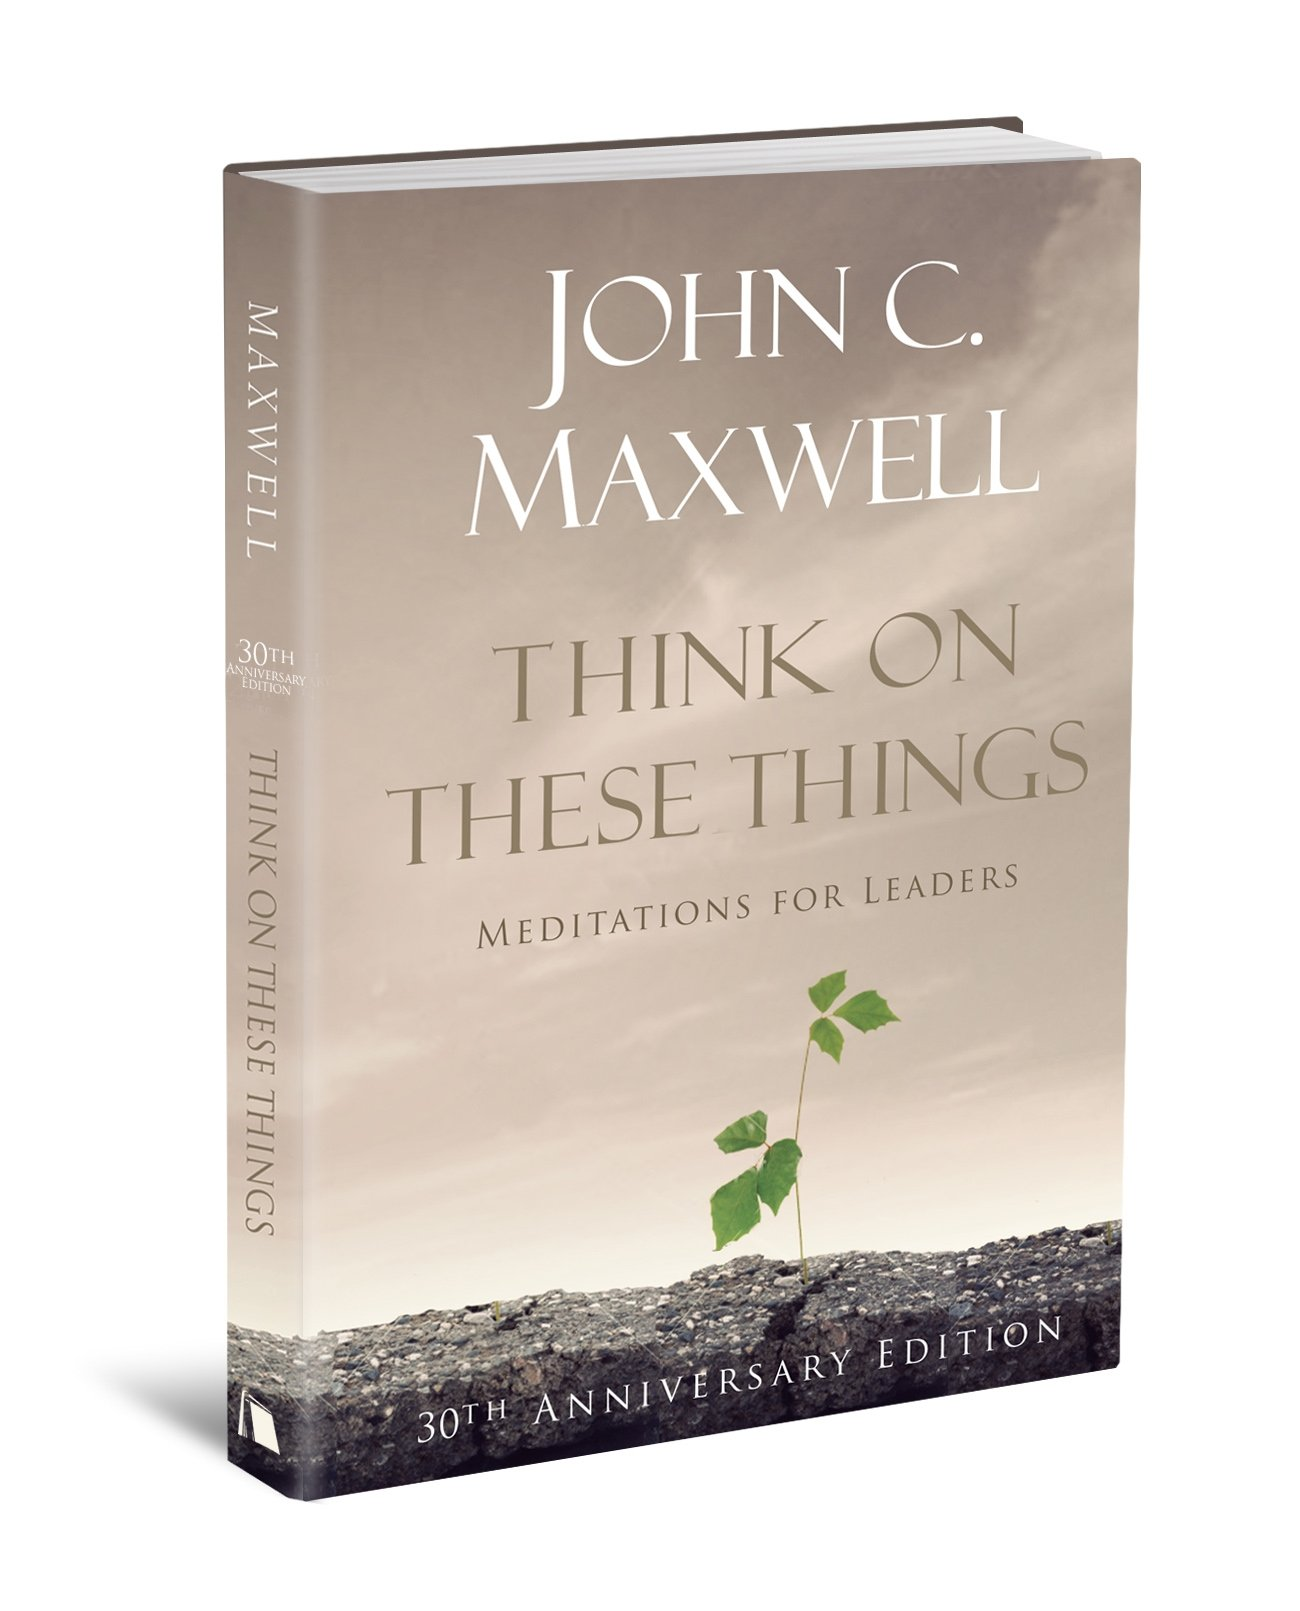 Think on These Things: Meditations for Leaders: 30th Anniversary Edition:  John C. Maxwell: 9780834125001: Amazon.com: Books